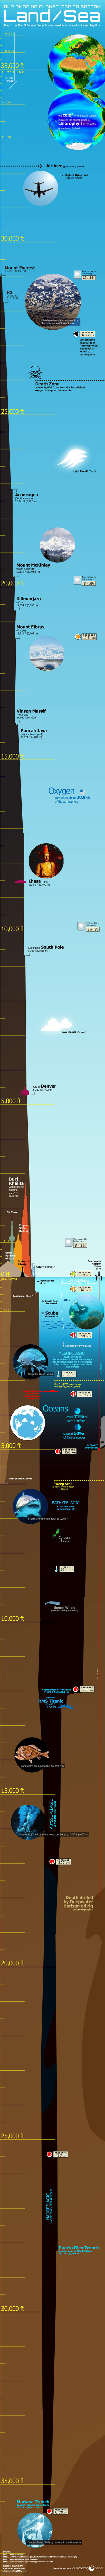 Infographic-_tallest_mountain_to_deepest_ocean_trench